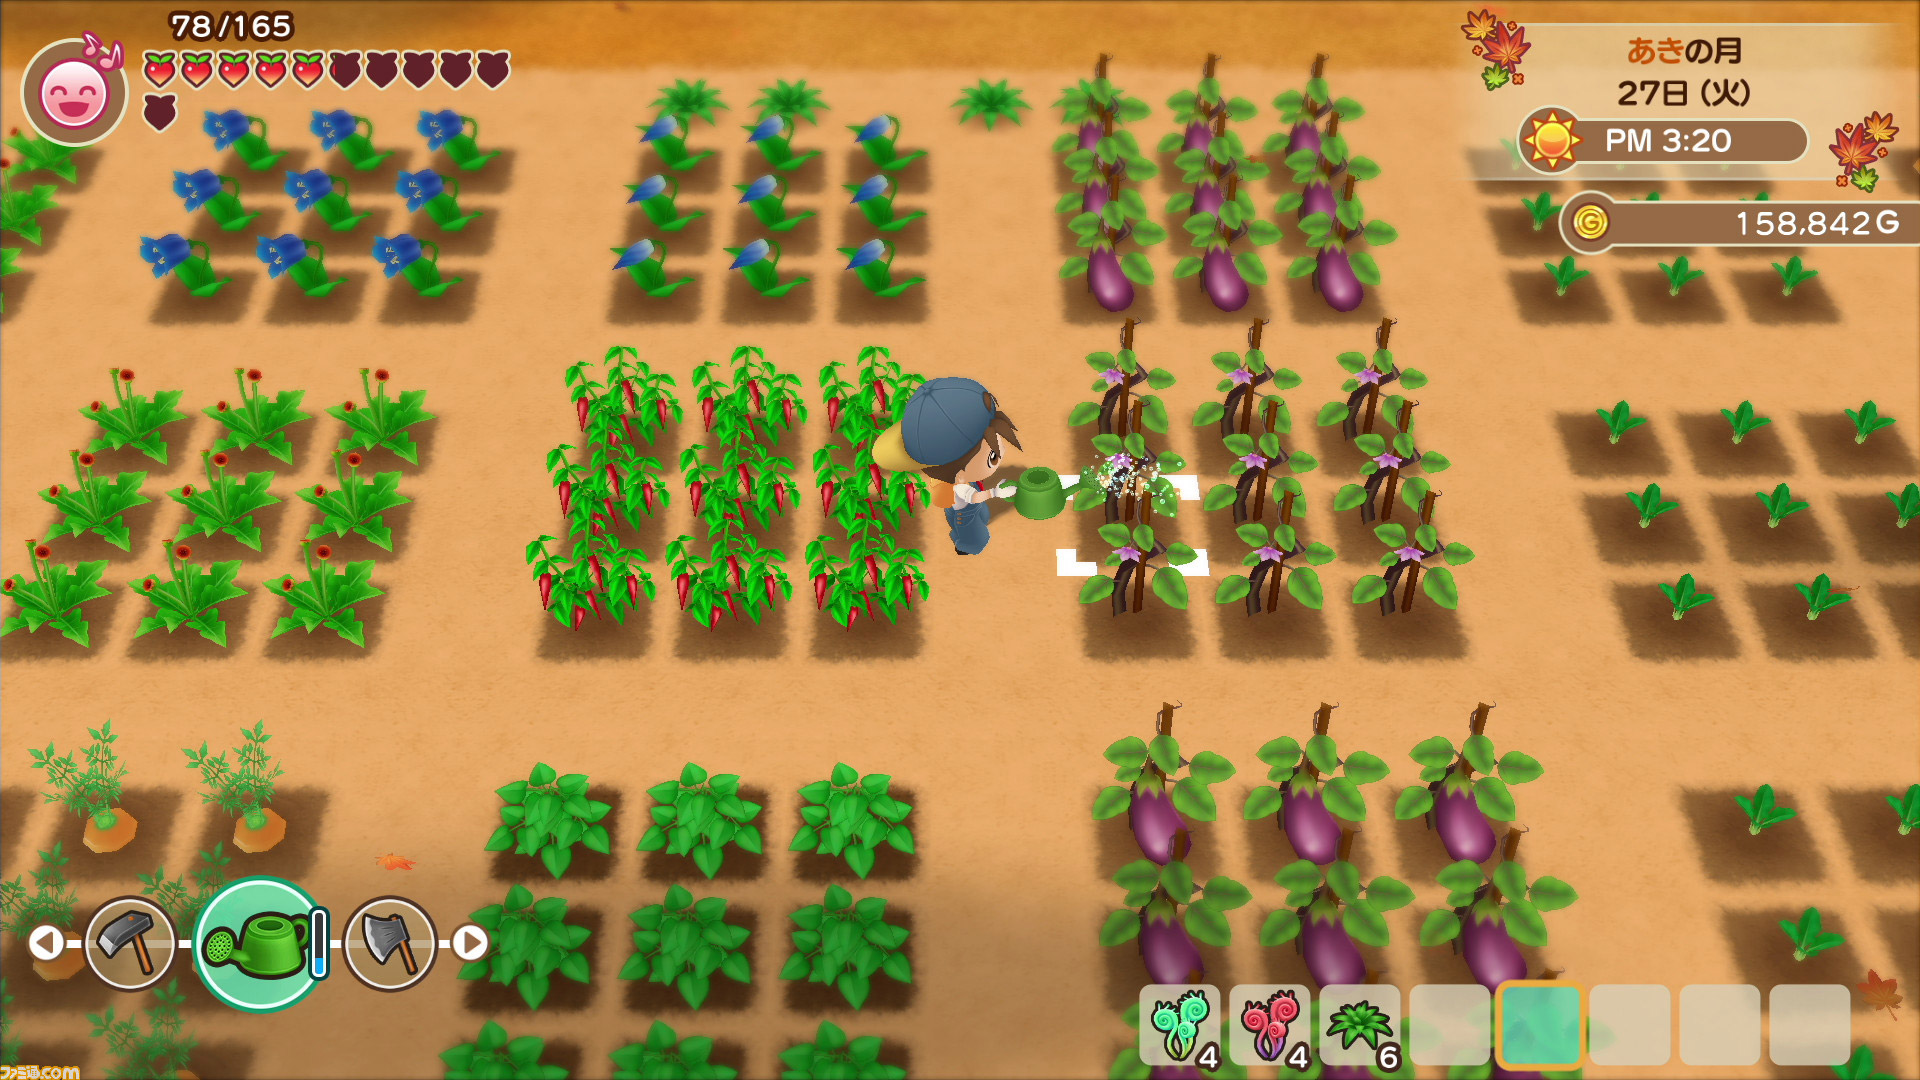 Farming in the Nintendo Switch remake of Harvest Moon: Friends of Mineral Town